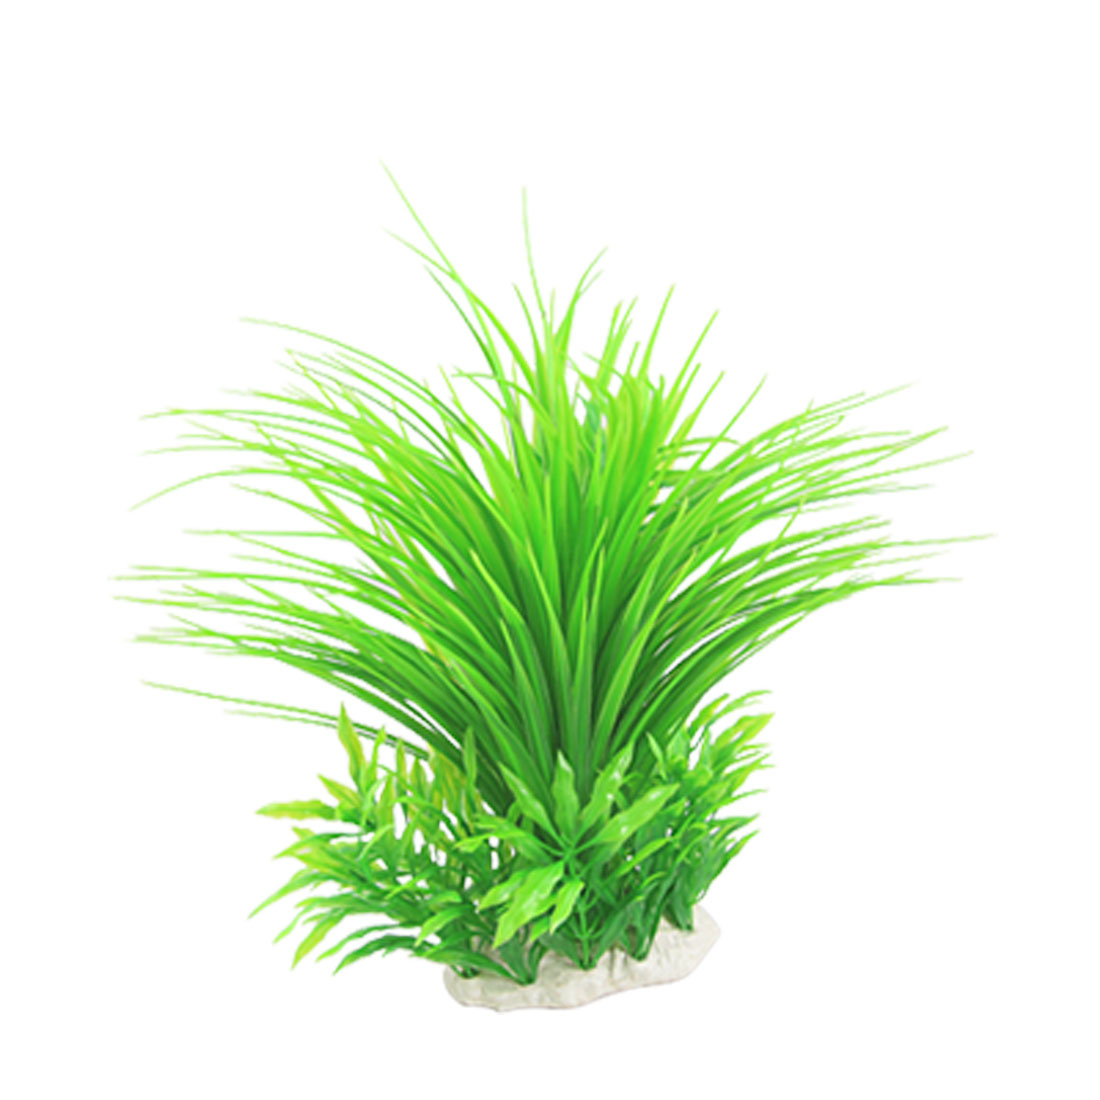 Aquarium Green Water Plastic Grass Plant Ornament 11""